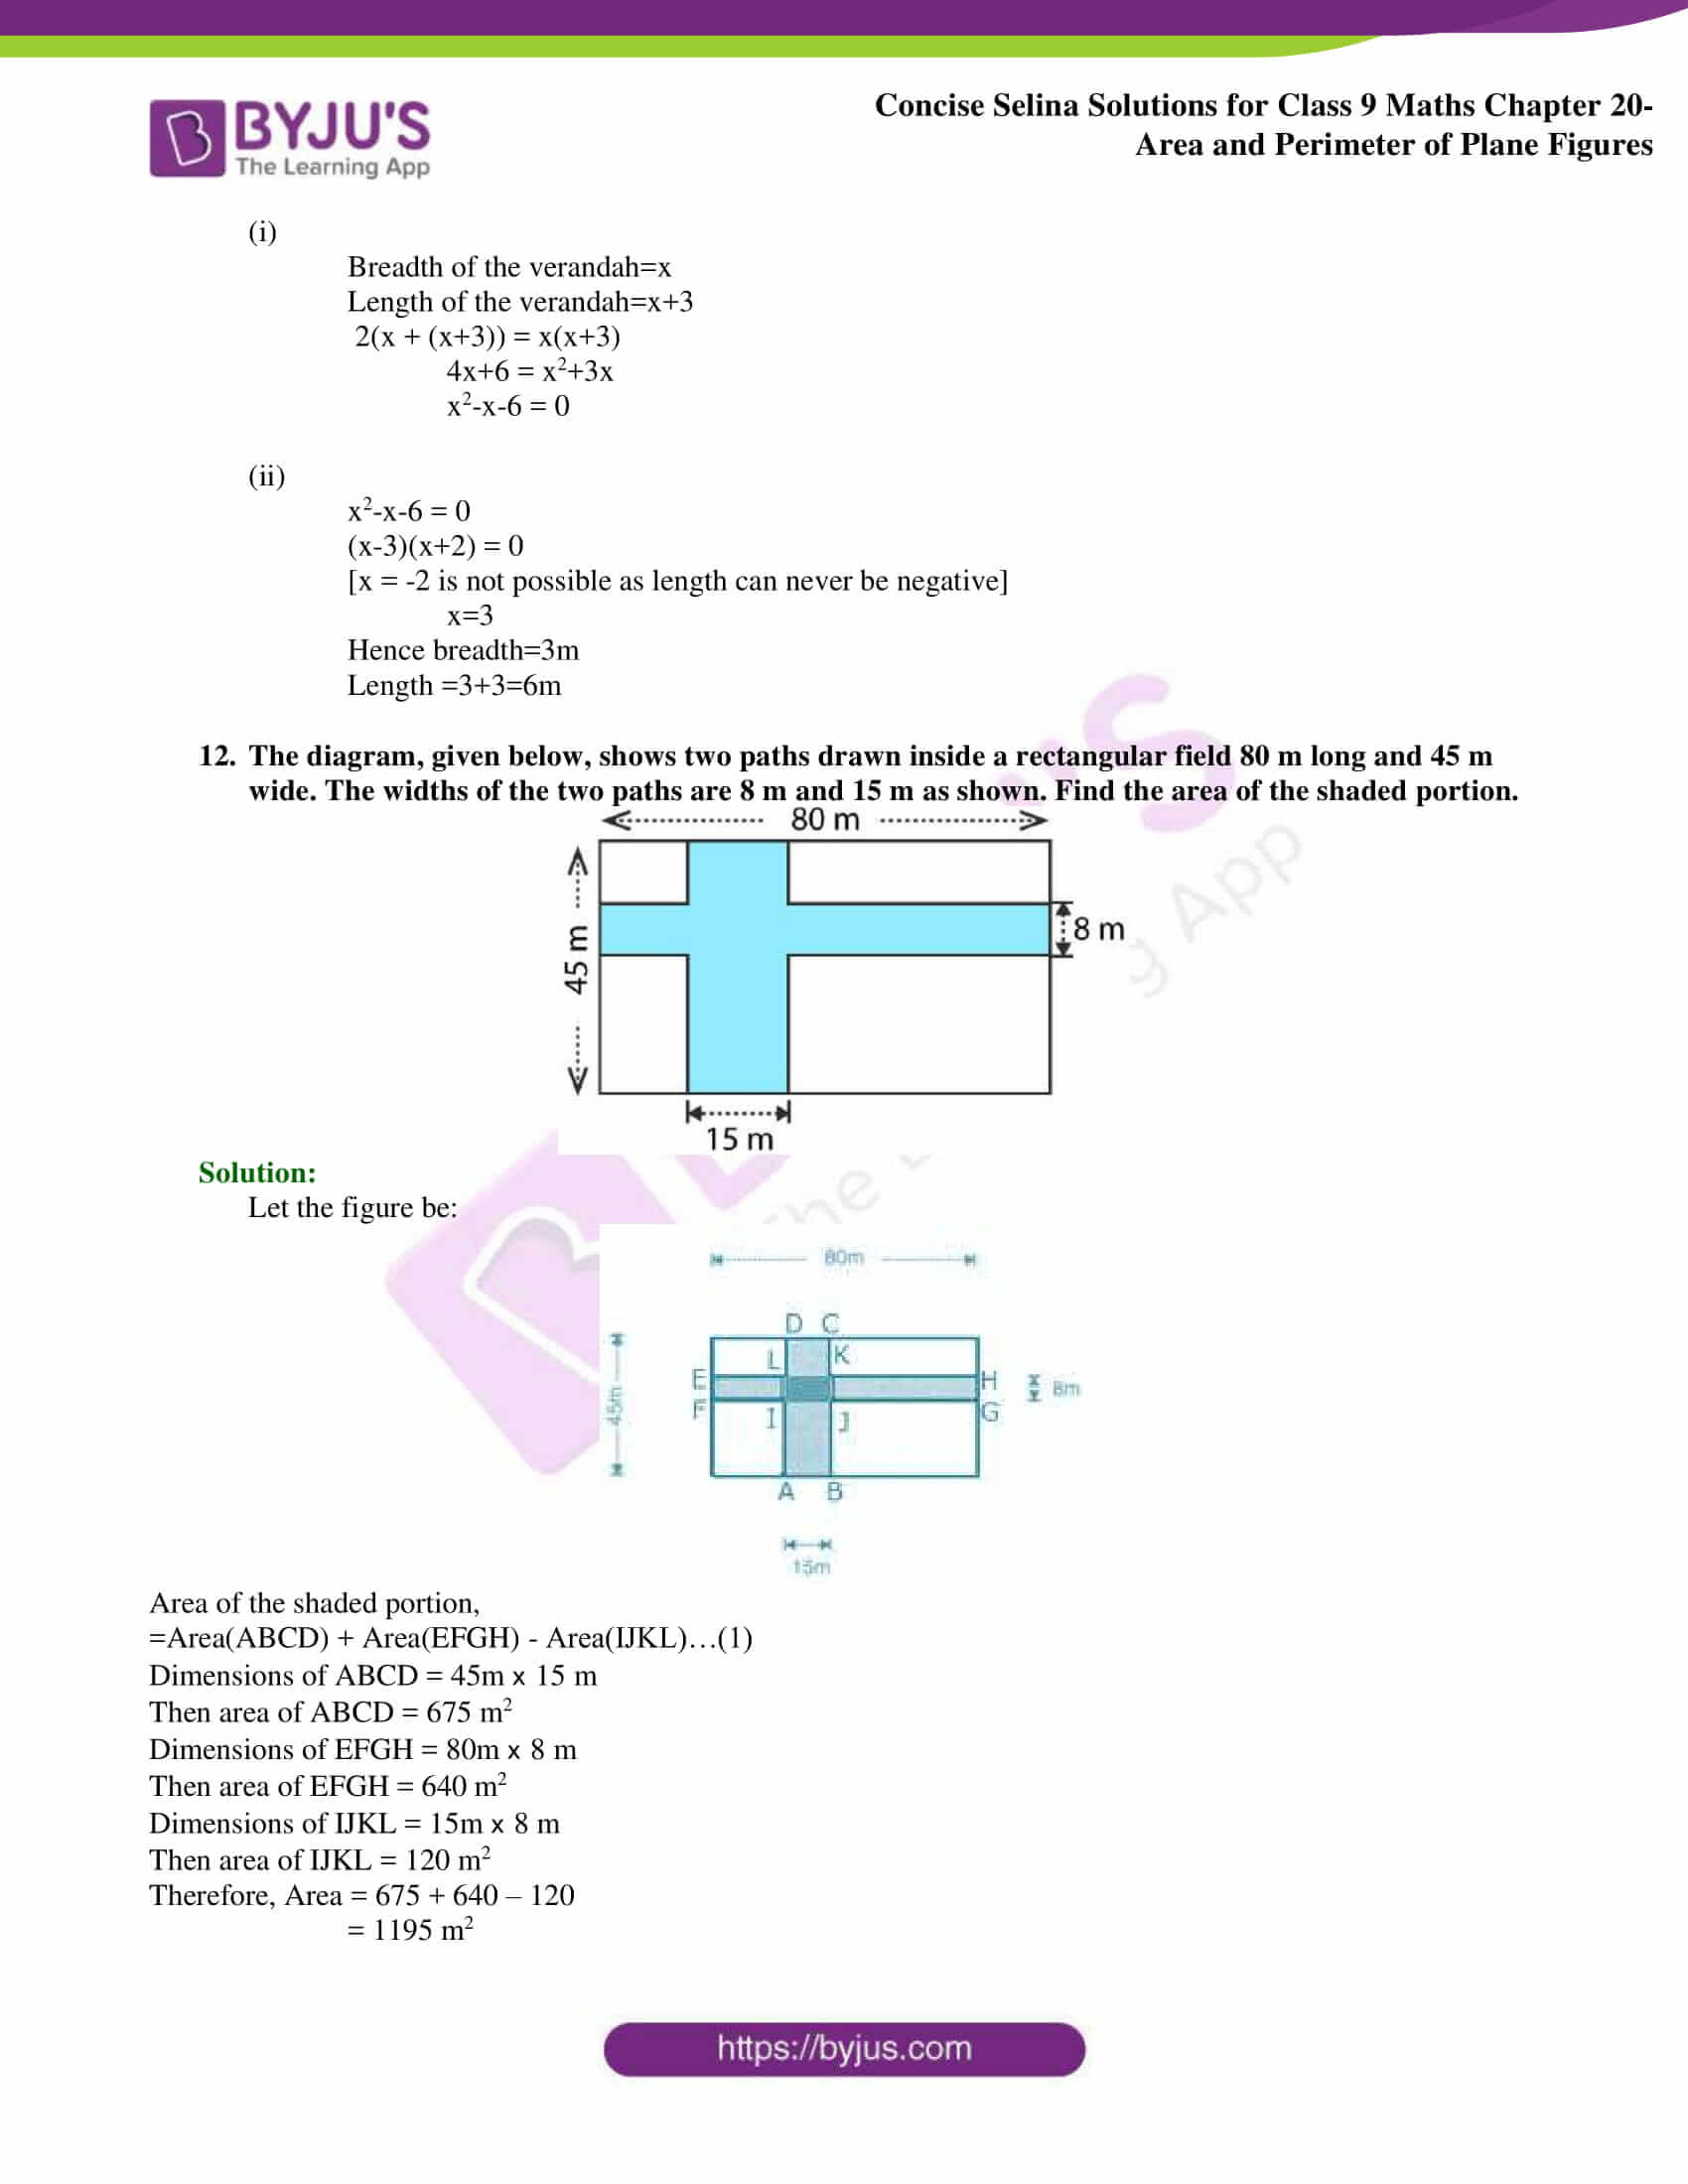 Concise Selina Solutions Class 9 Maths Chapter 20 Area and Perimeter of Plane part 16